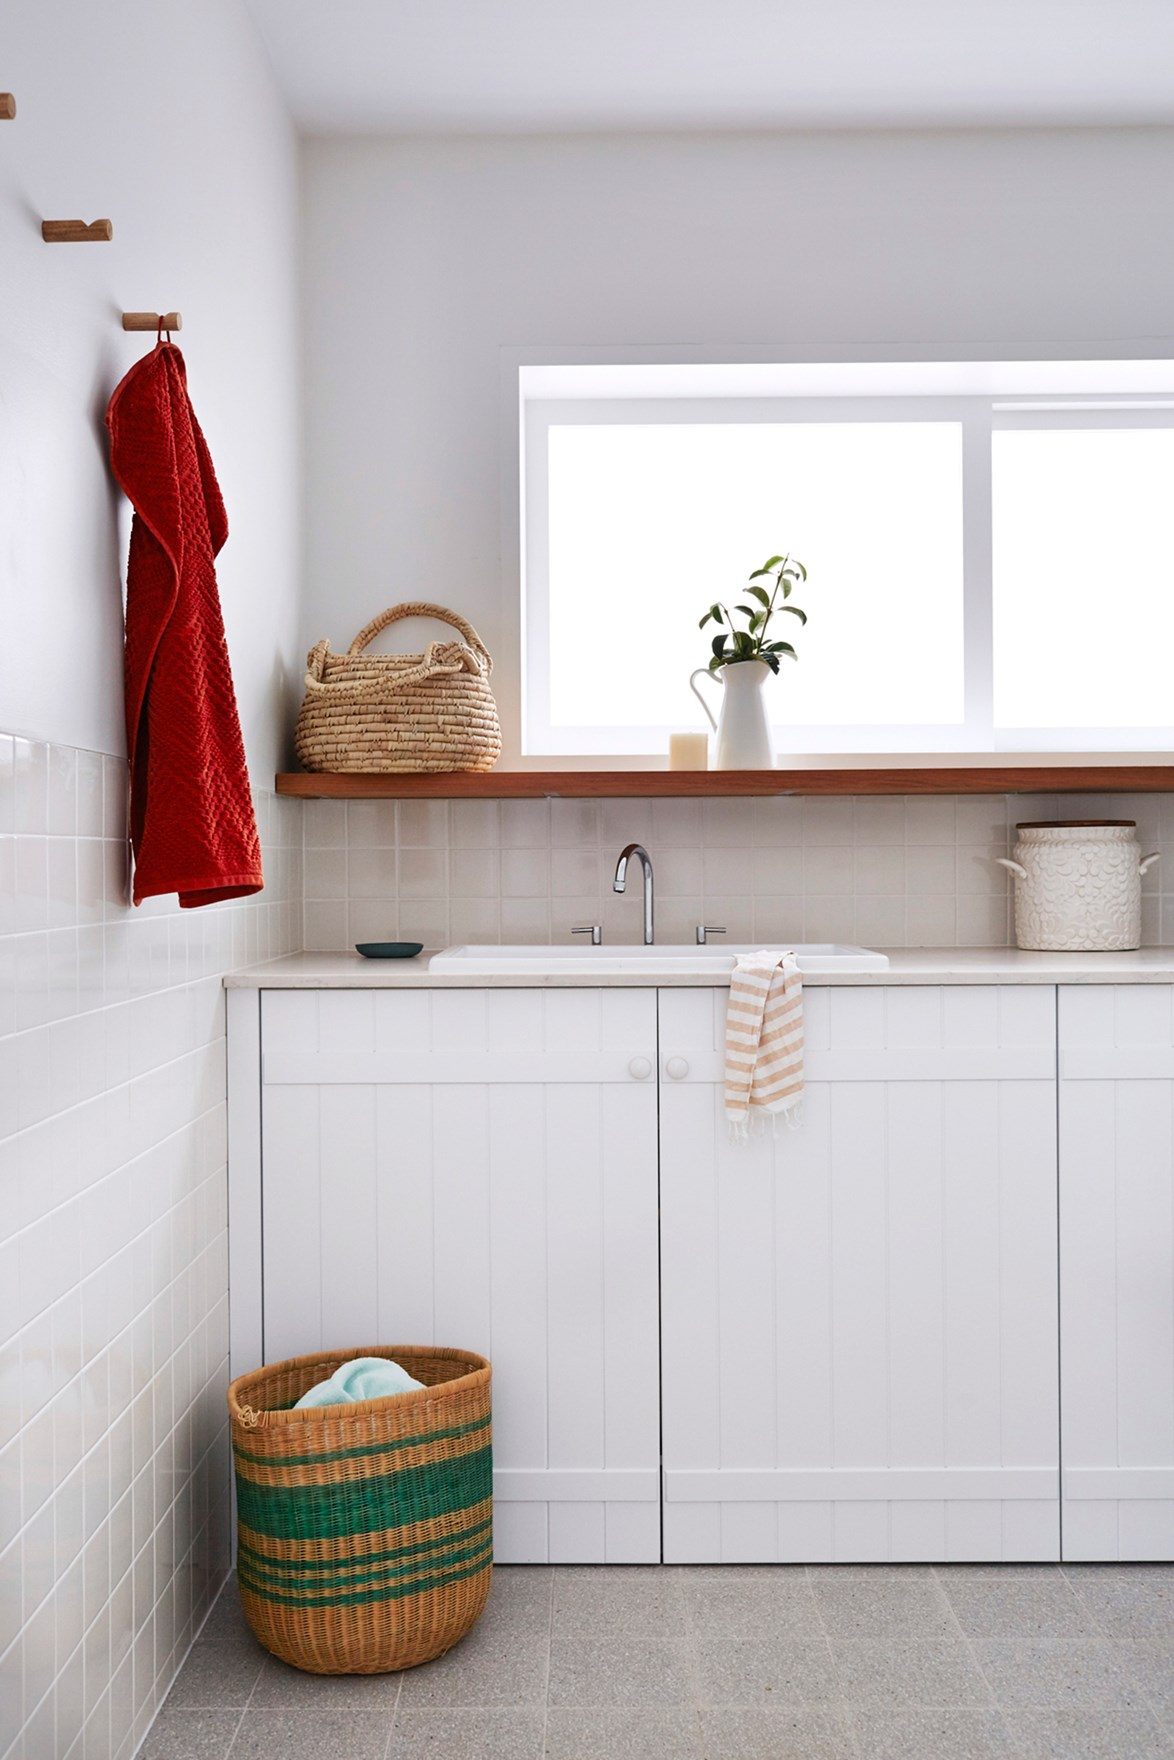 A clean and organised laundry will make washing less of a chore, we promise!